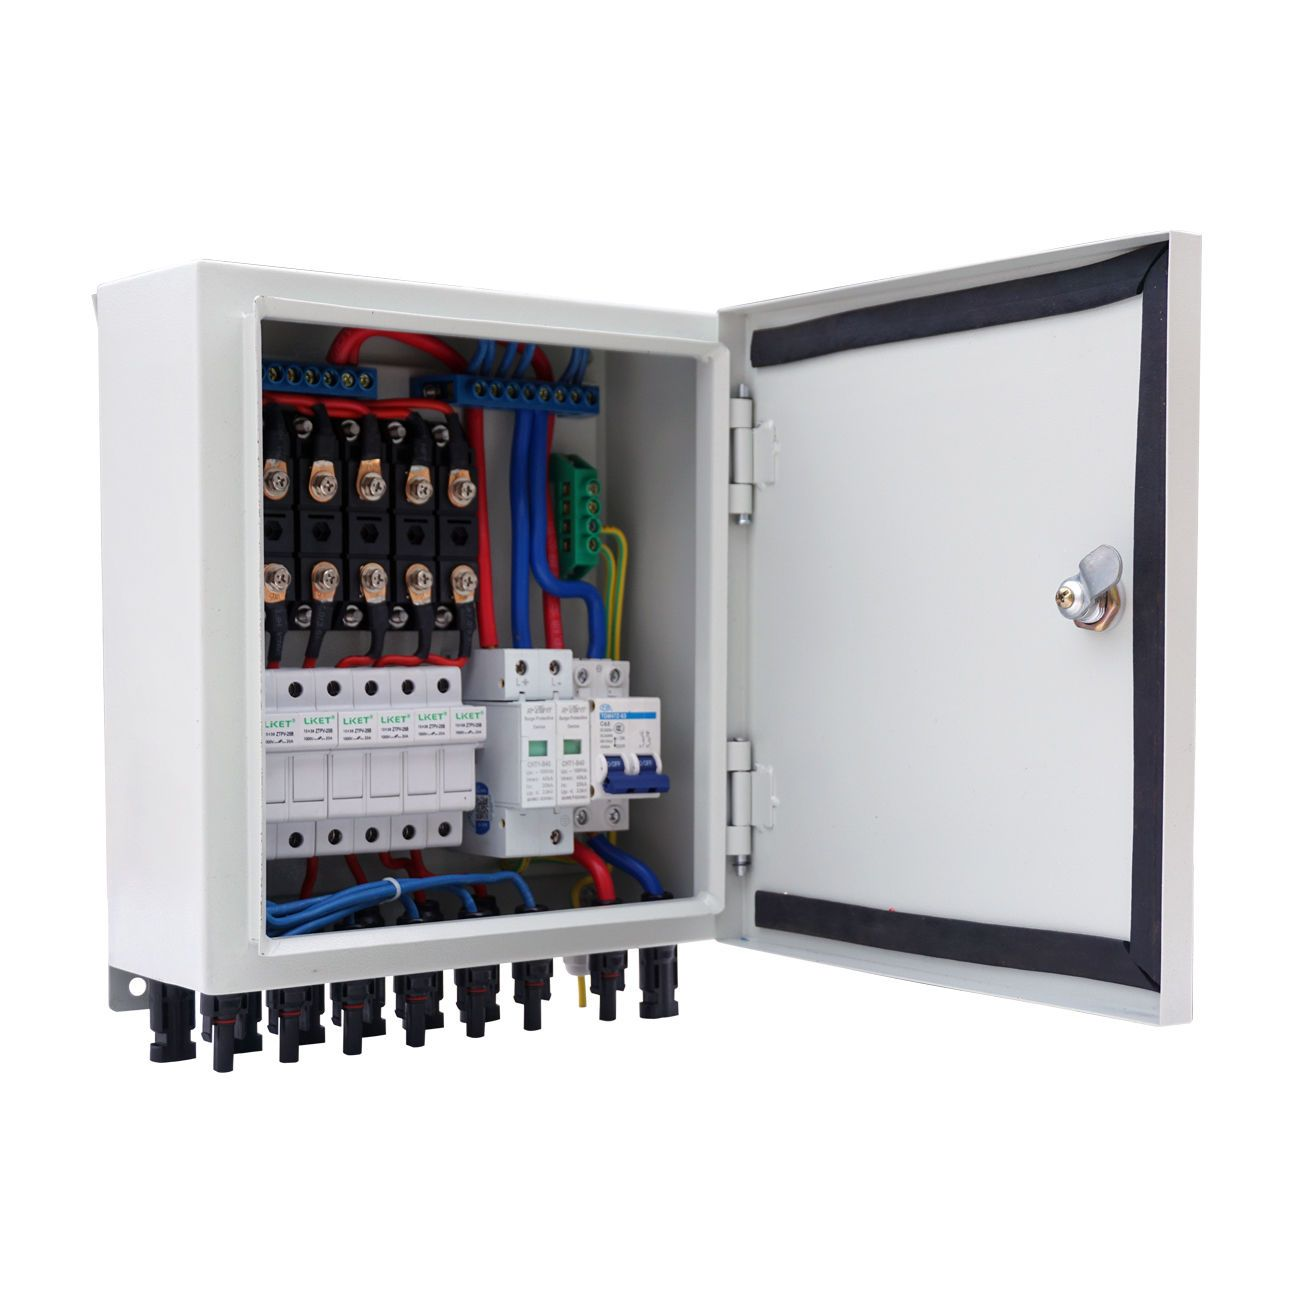 6-String Solar PV Array Combiner Box W Circuit Breakers Surge Lightning Protection for off grid solar energy system